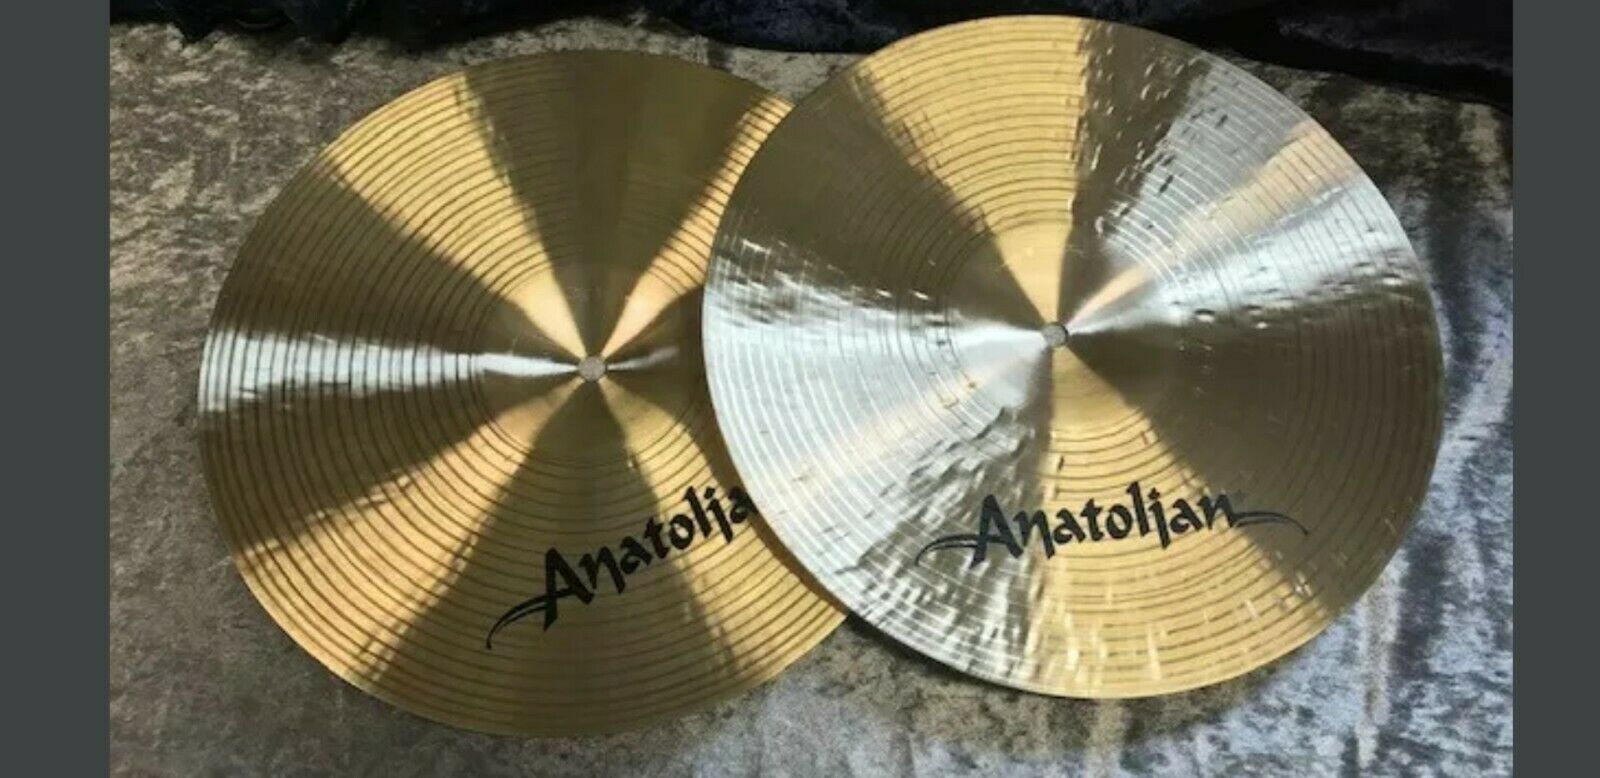 Anatolian Hihat 14  Traditional serie Rock